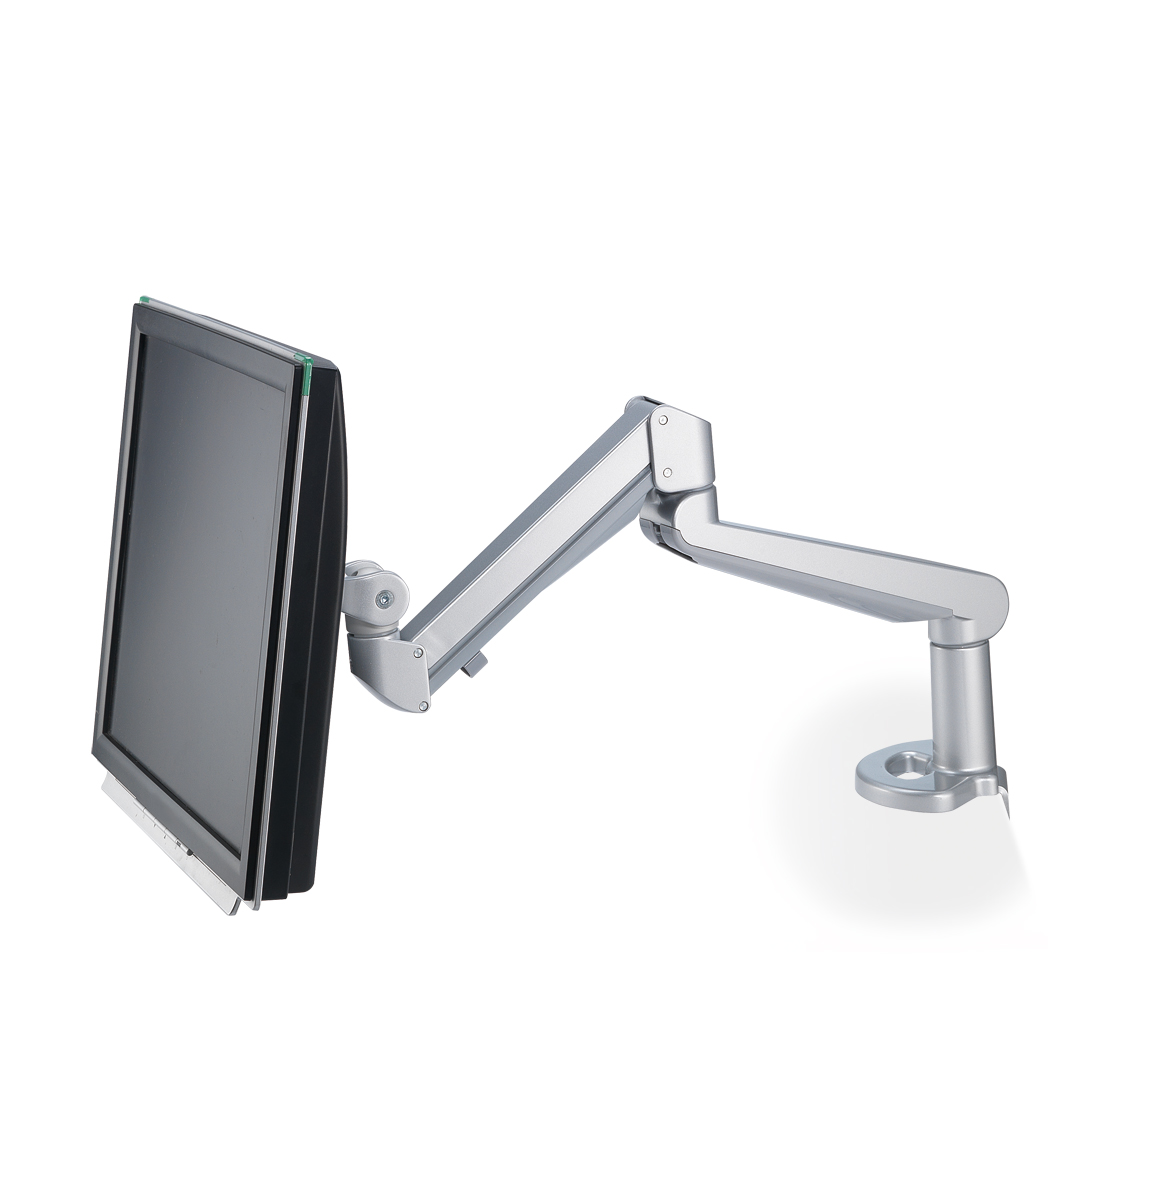 Monitor Arm Cpa11 Complement